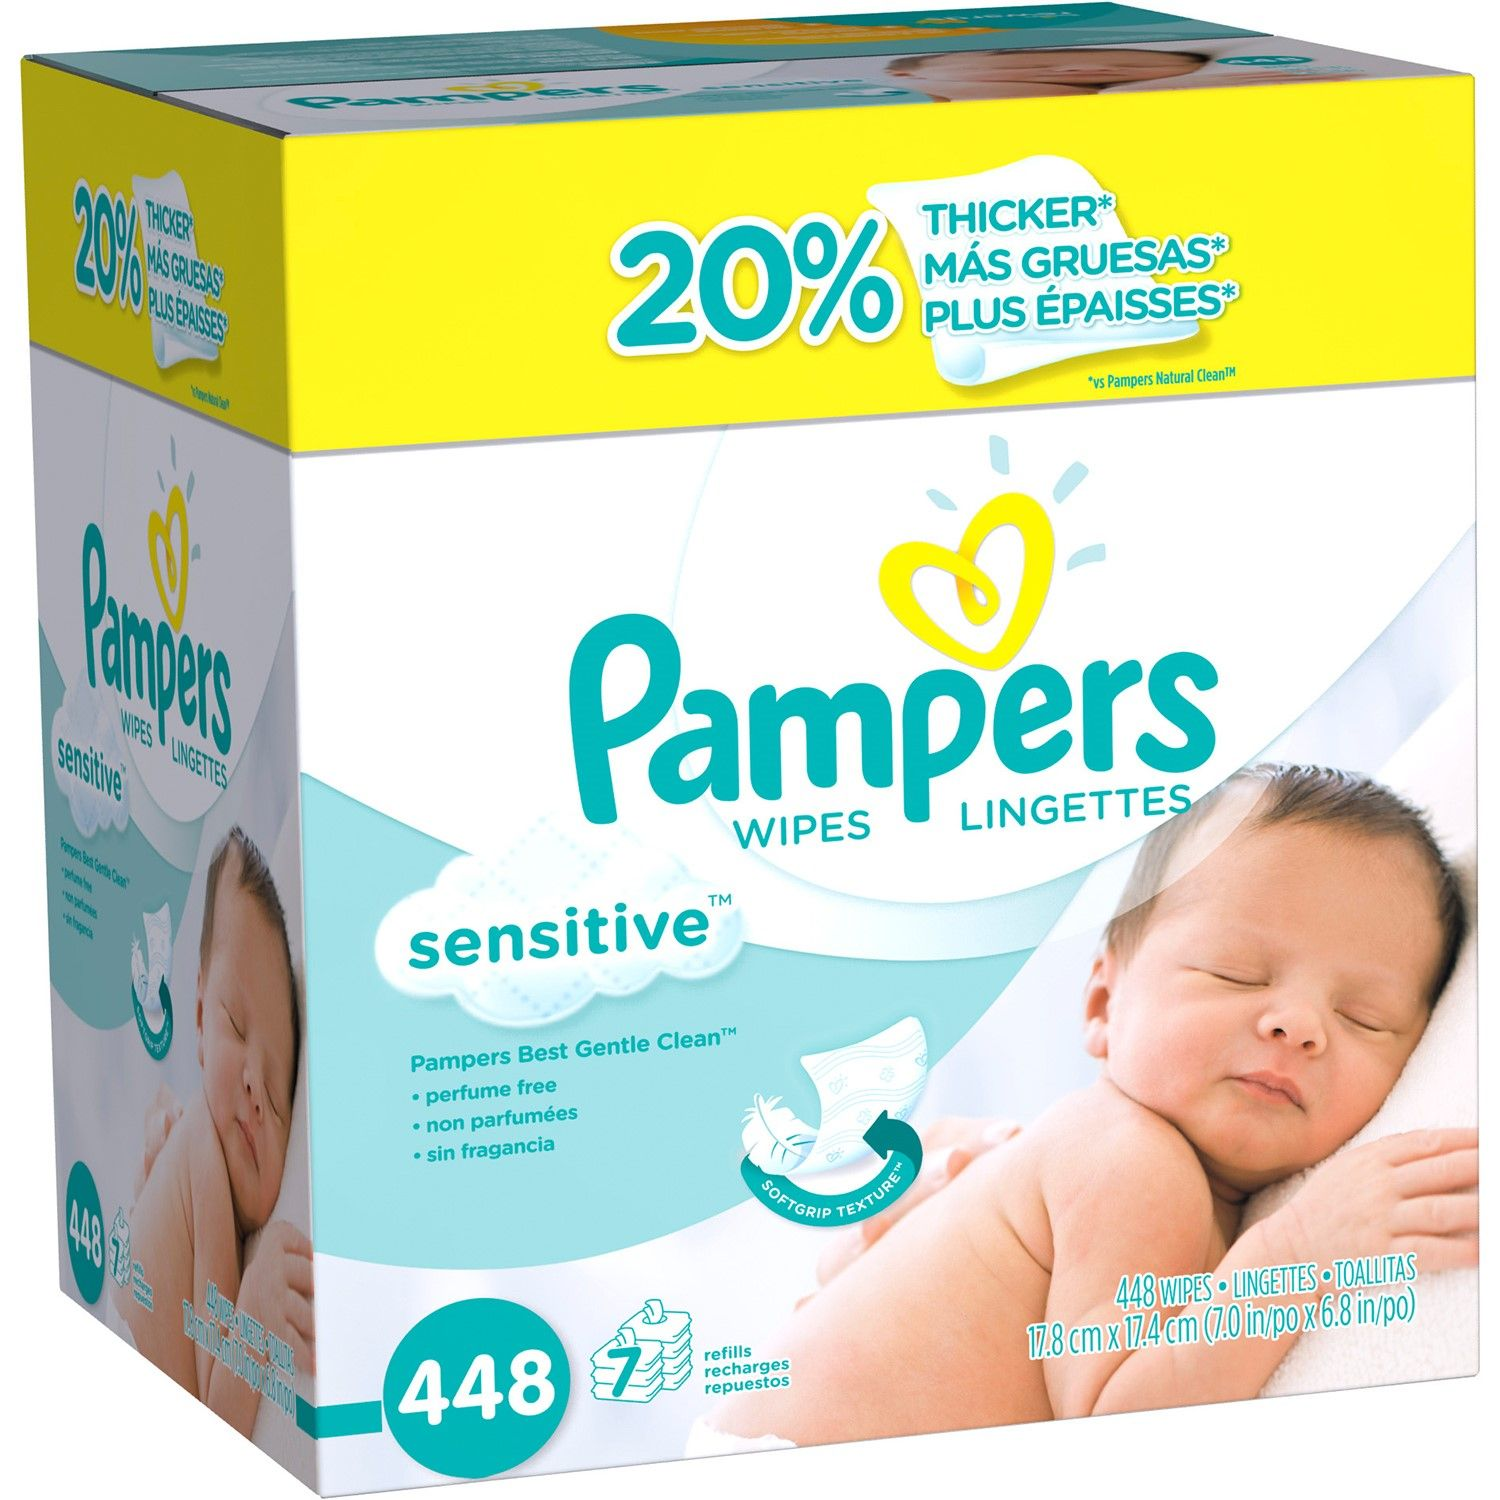 Pampers Baby Wipes Sensitive 7x Refill Tub Not Included